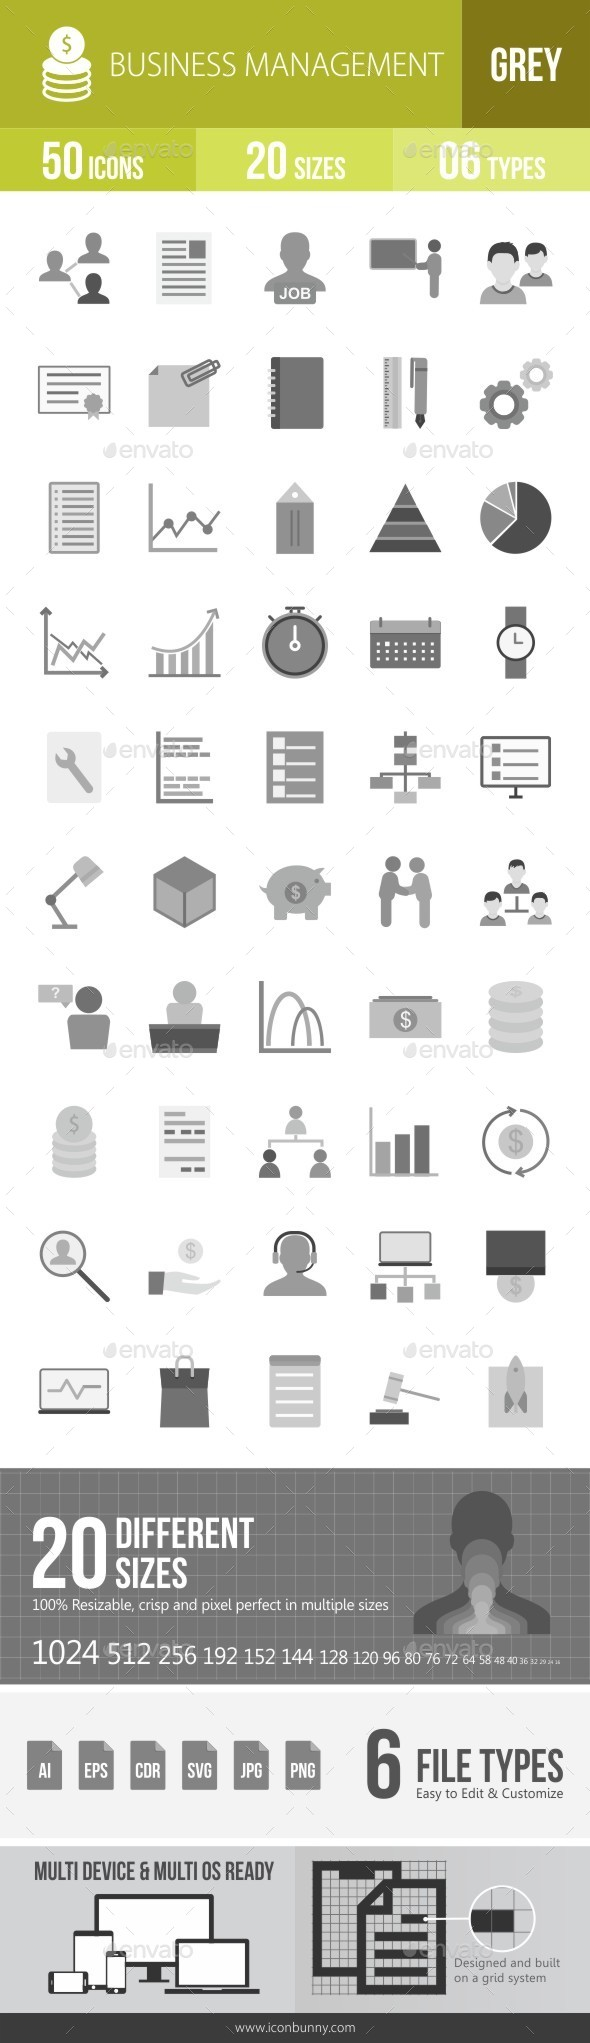 Business Management Greyscale Icons - Icons